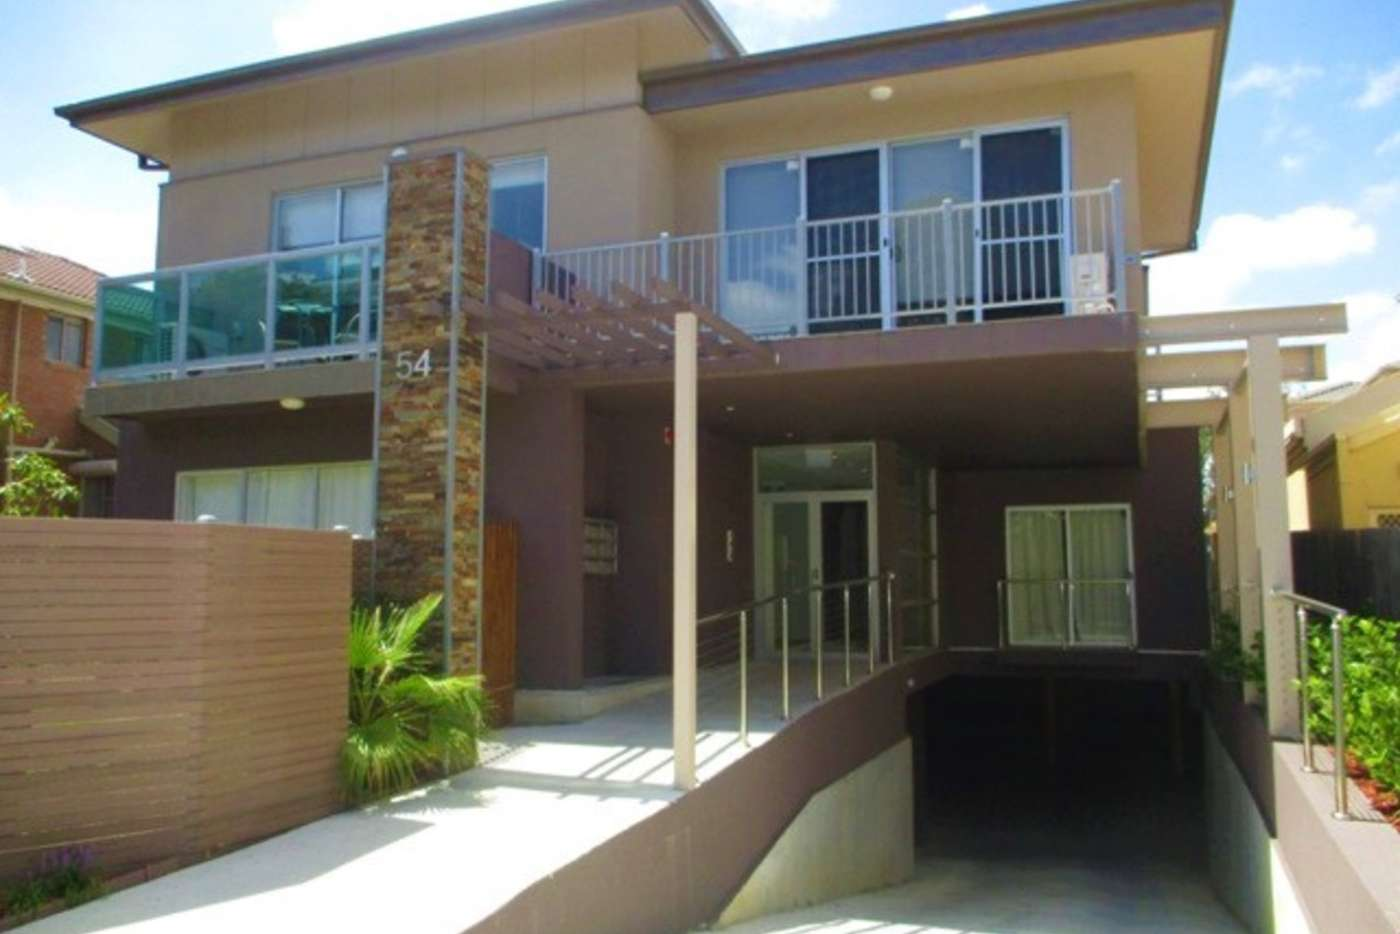 Main view of Homely apartment listing, 1/54 Kanooka Grove, Clayton VIC 3168